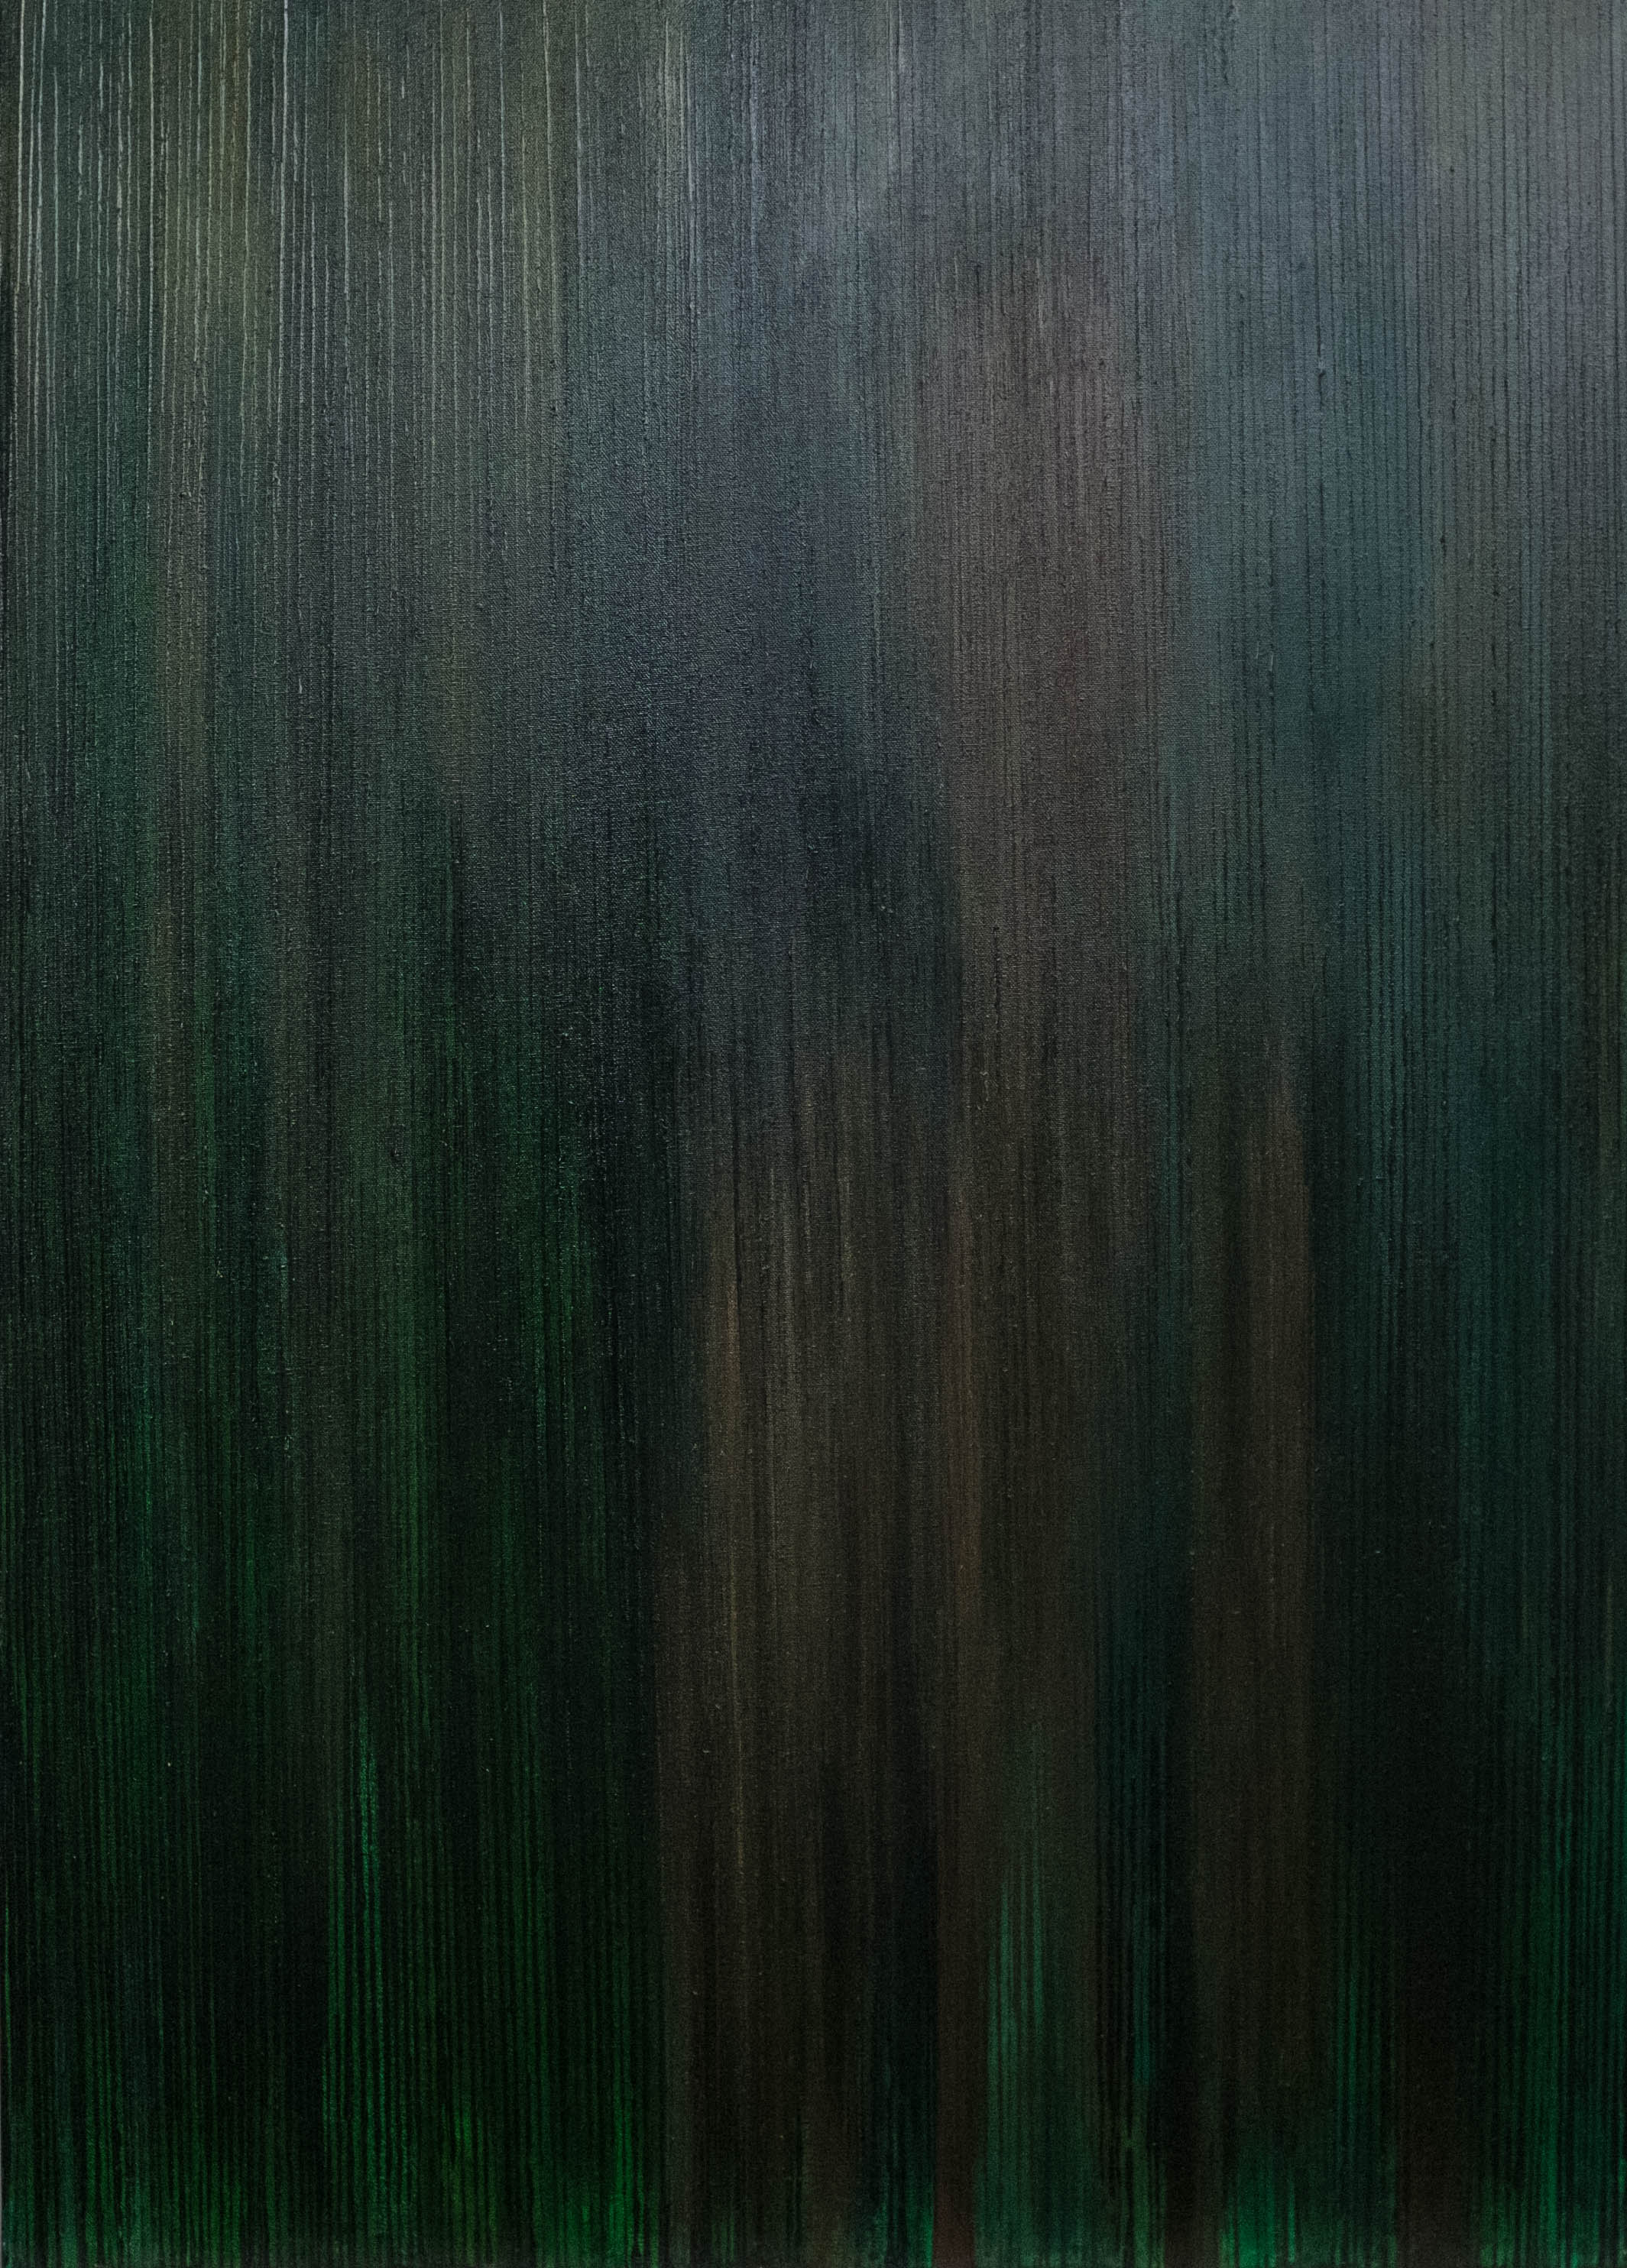 Emergence II - Green/Brown -2015